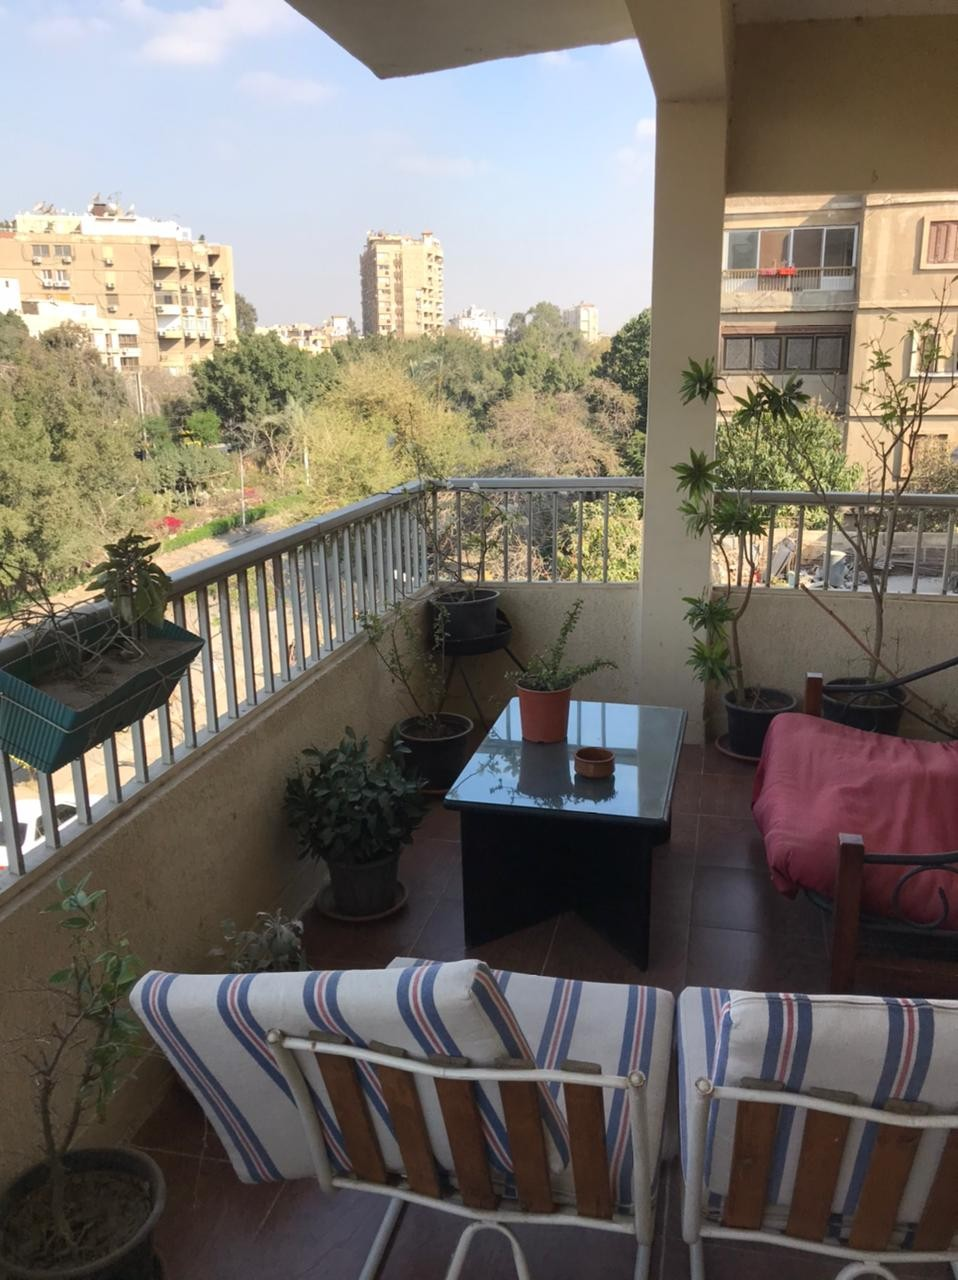 Spaciously Furnished Apartment For Rent In The Prime Location Of Degla El Maadi - 4918 Featured Image